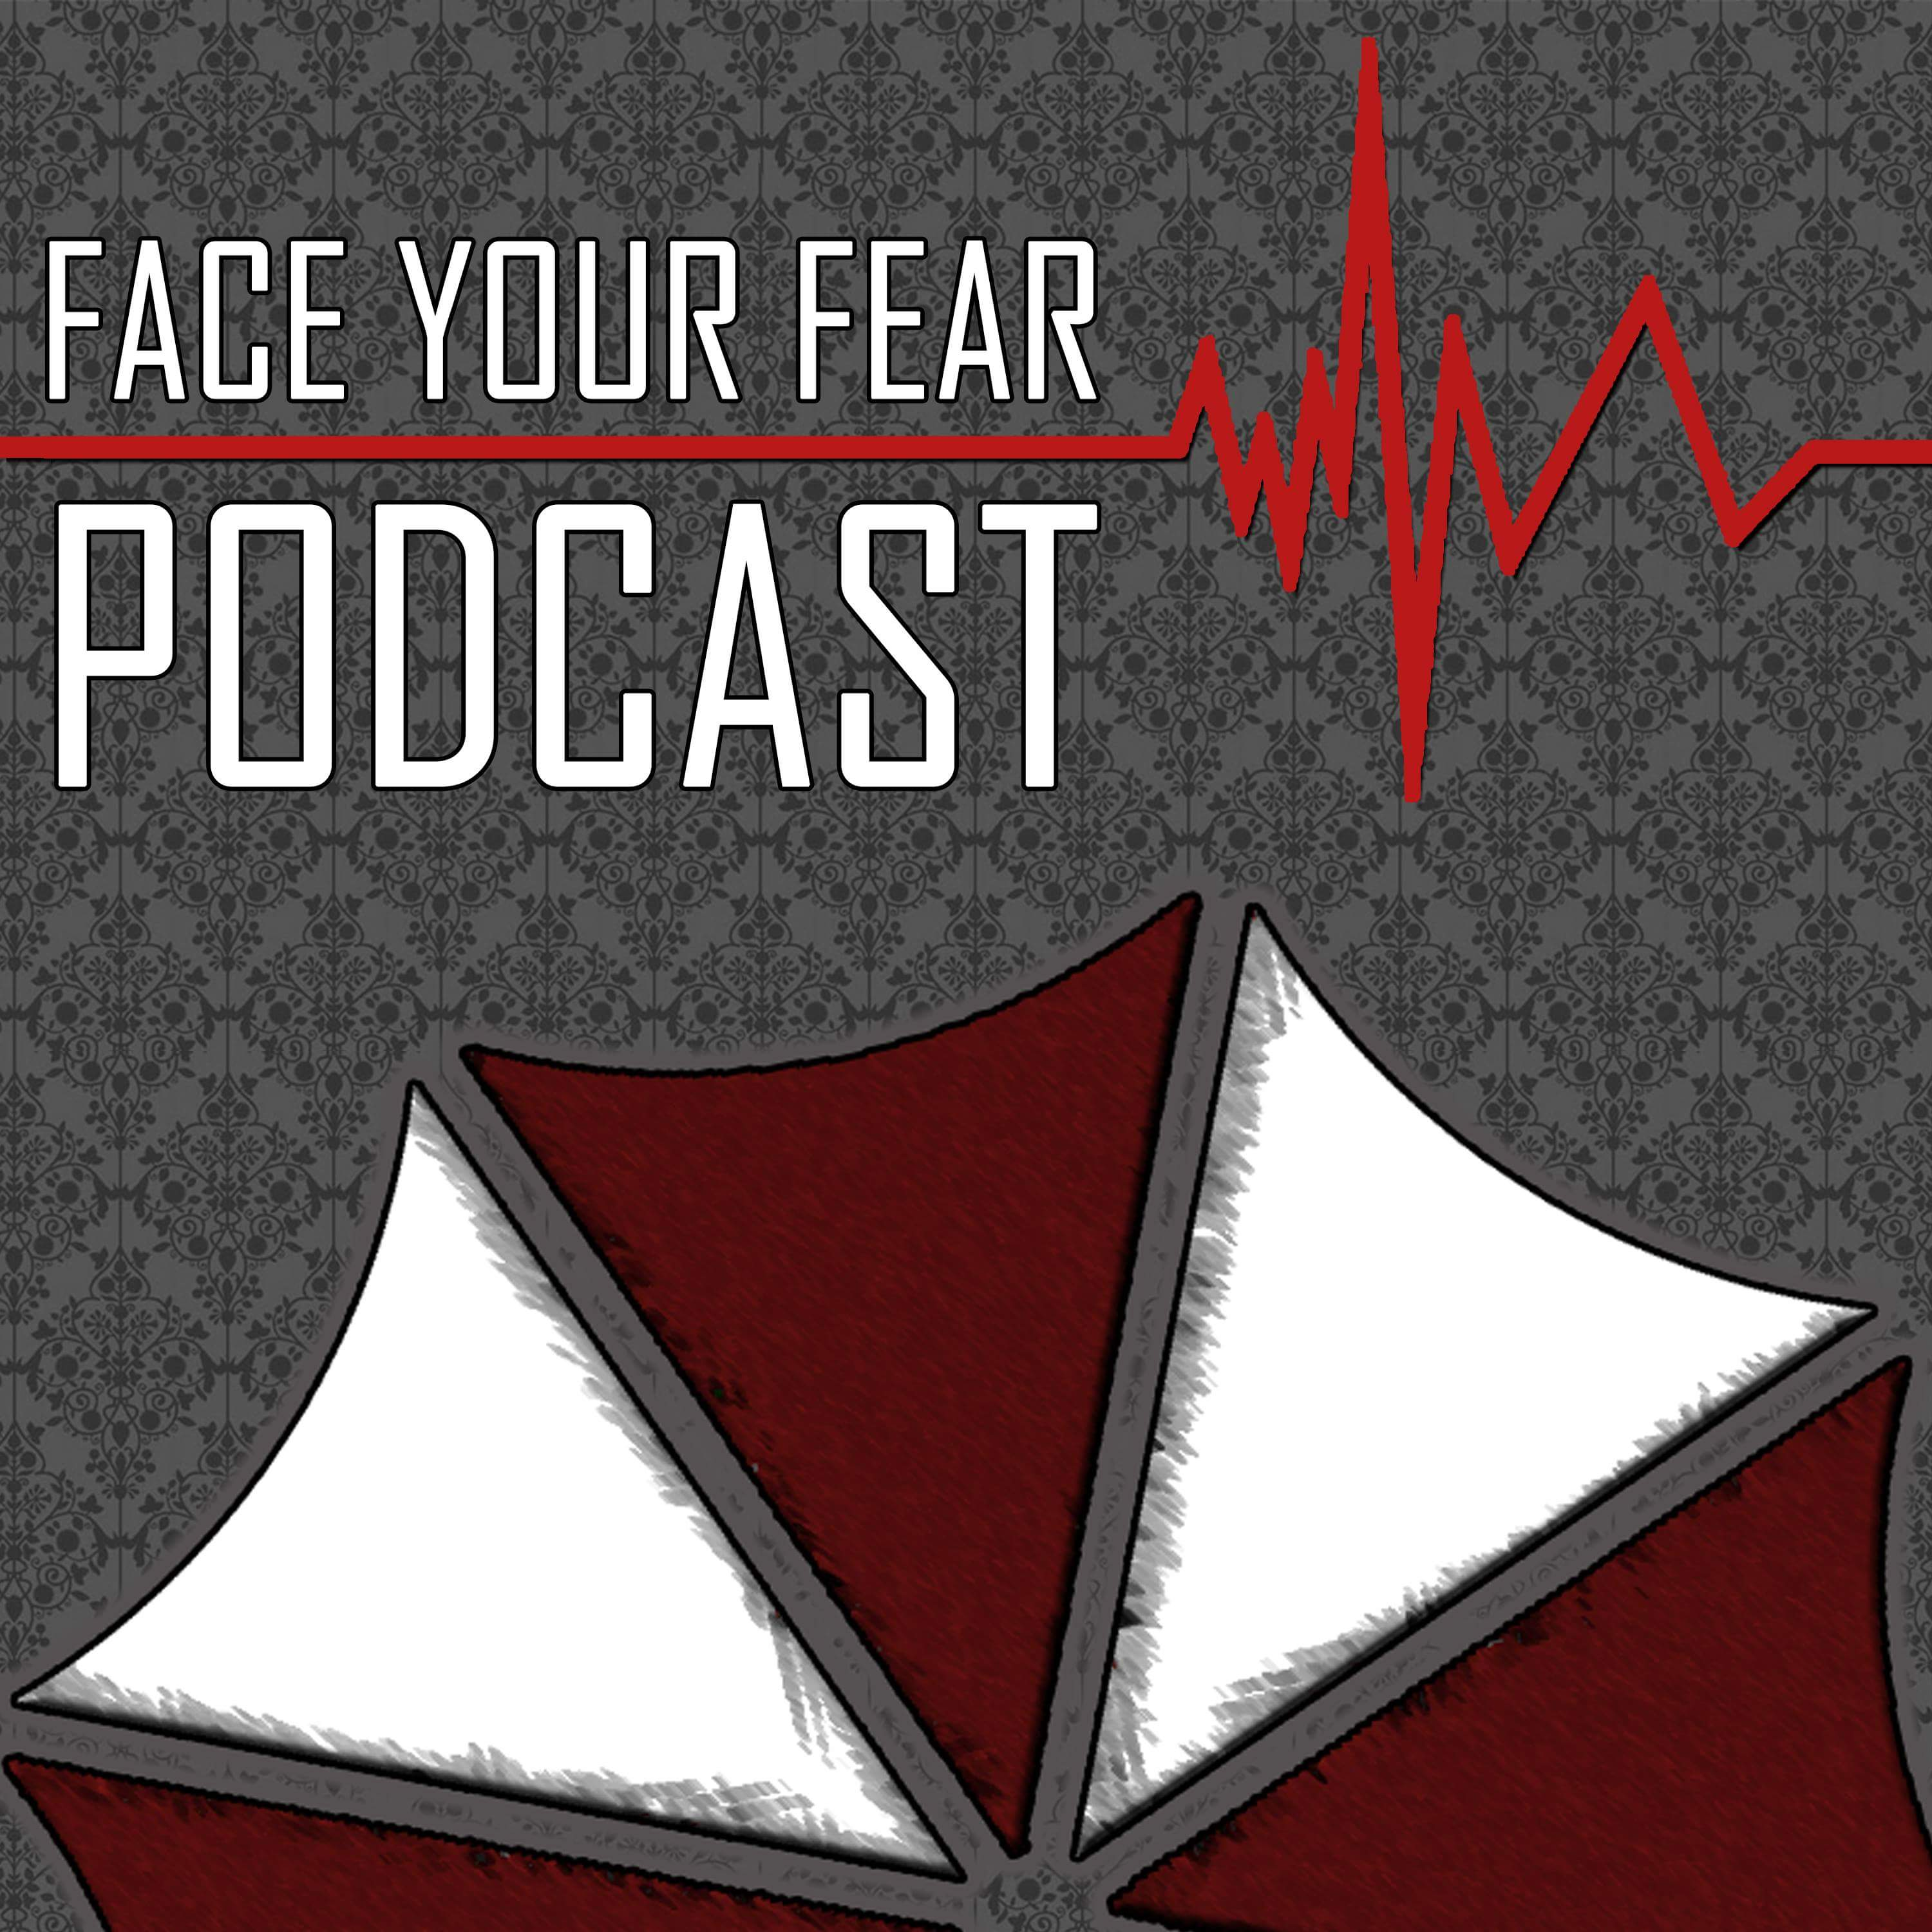 Face Your Fear Podcast